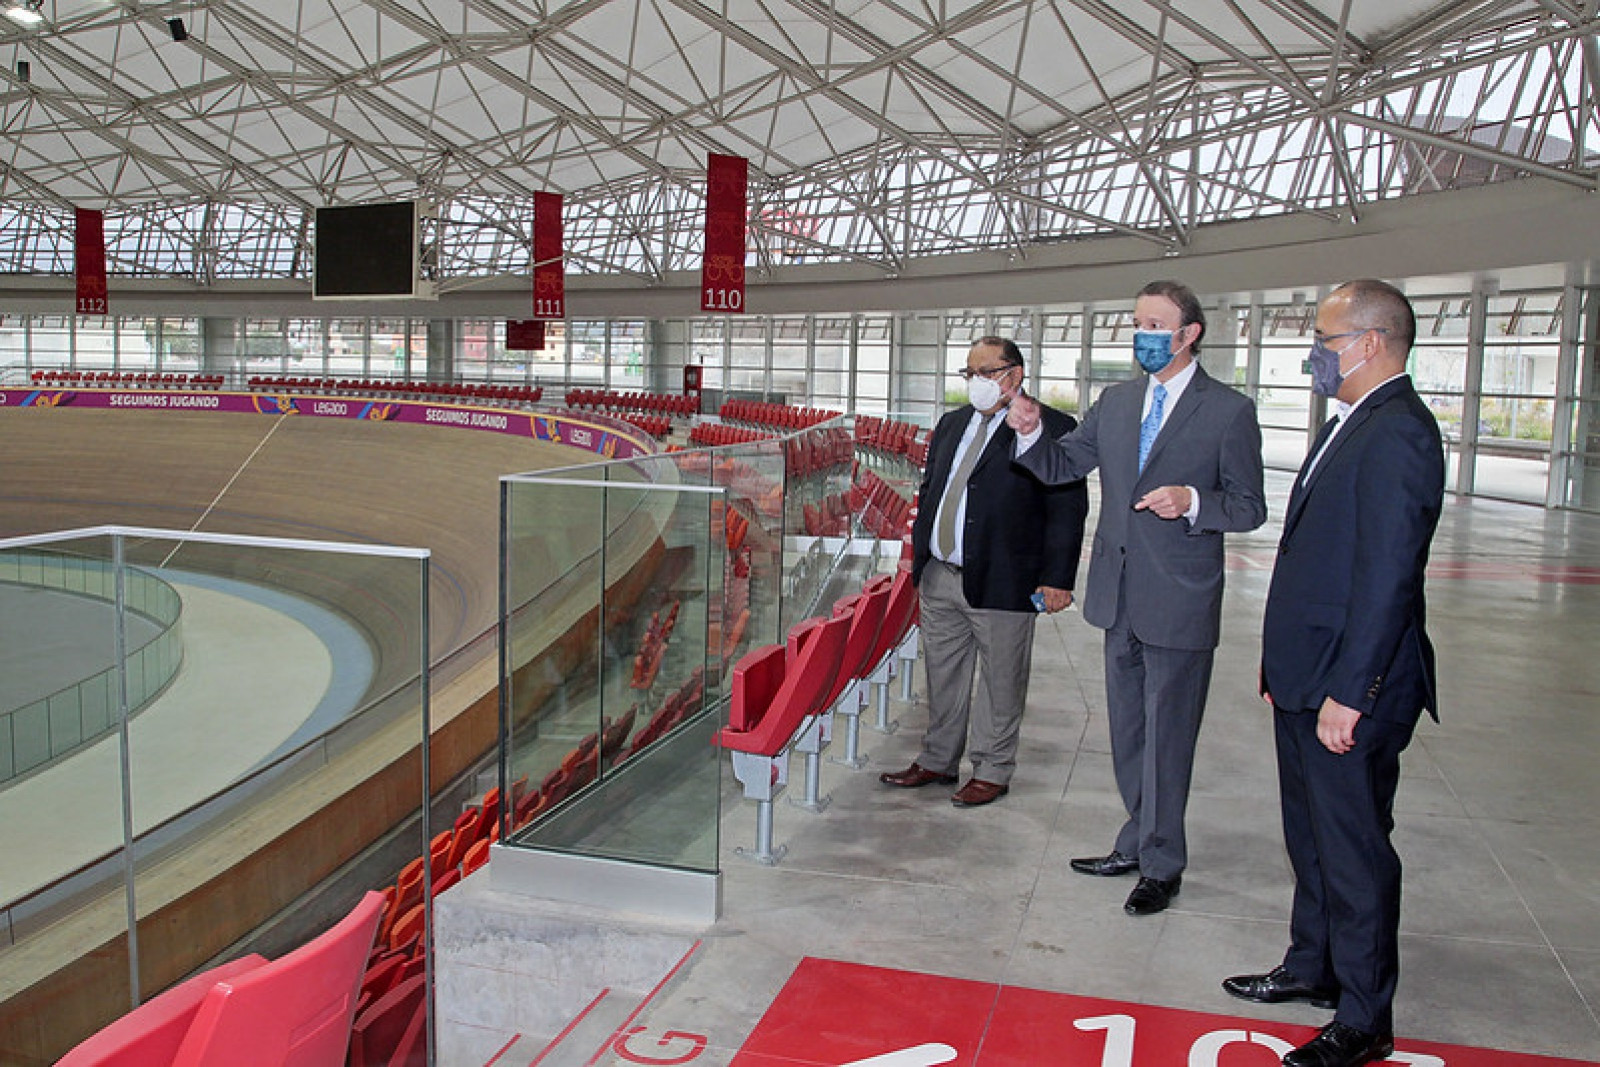 Engie awarded maintenance contract for Lima 2019 venues